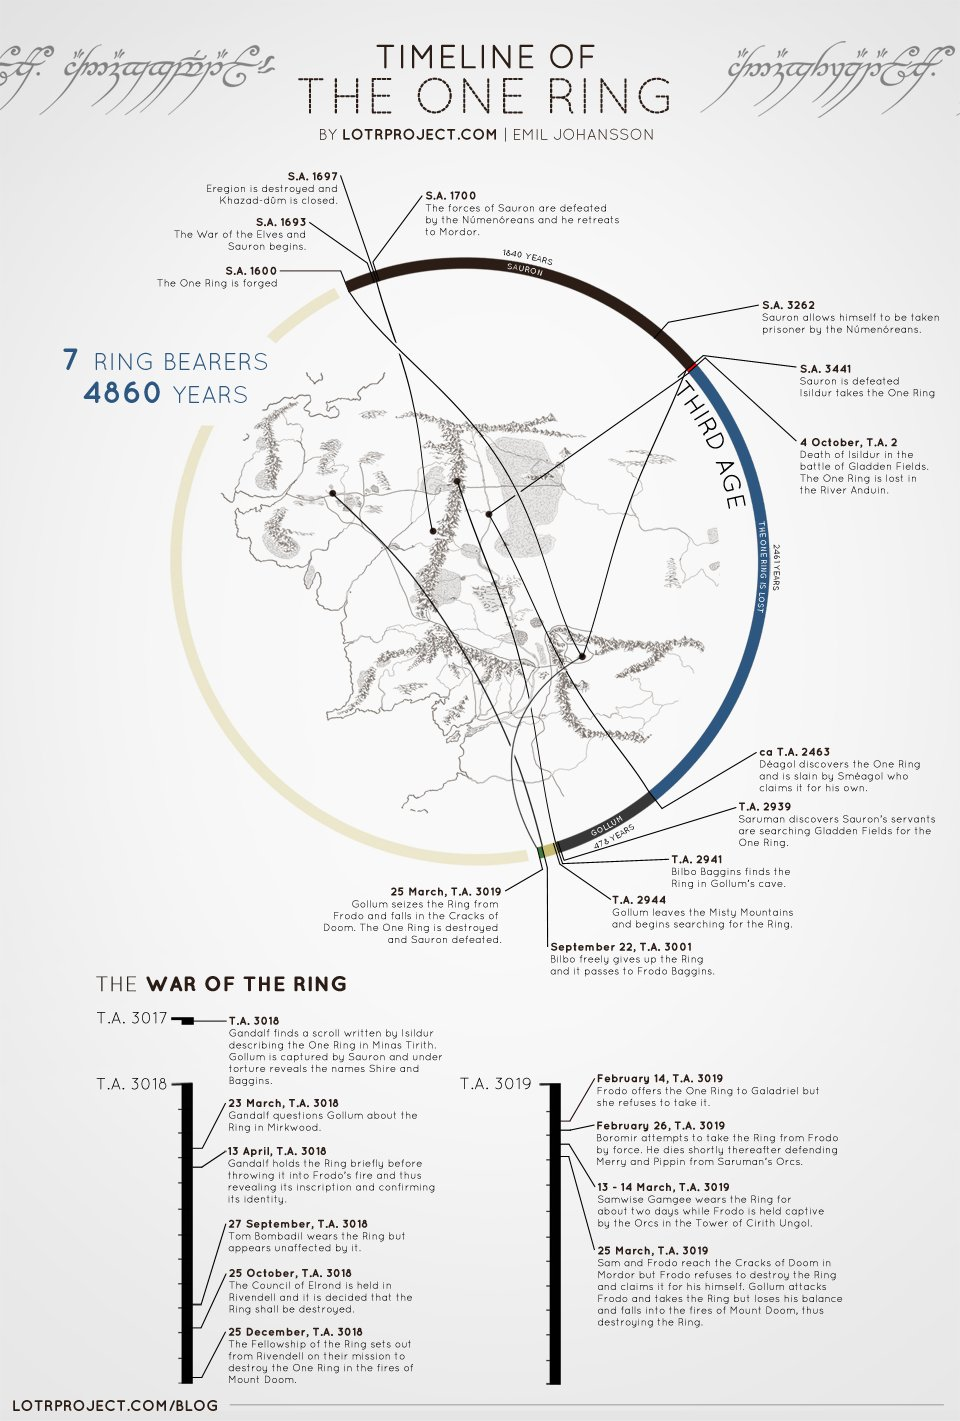 A Visual Timeline of the One Ring - LOTR Project